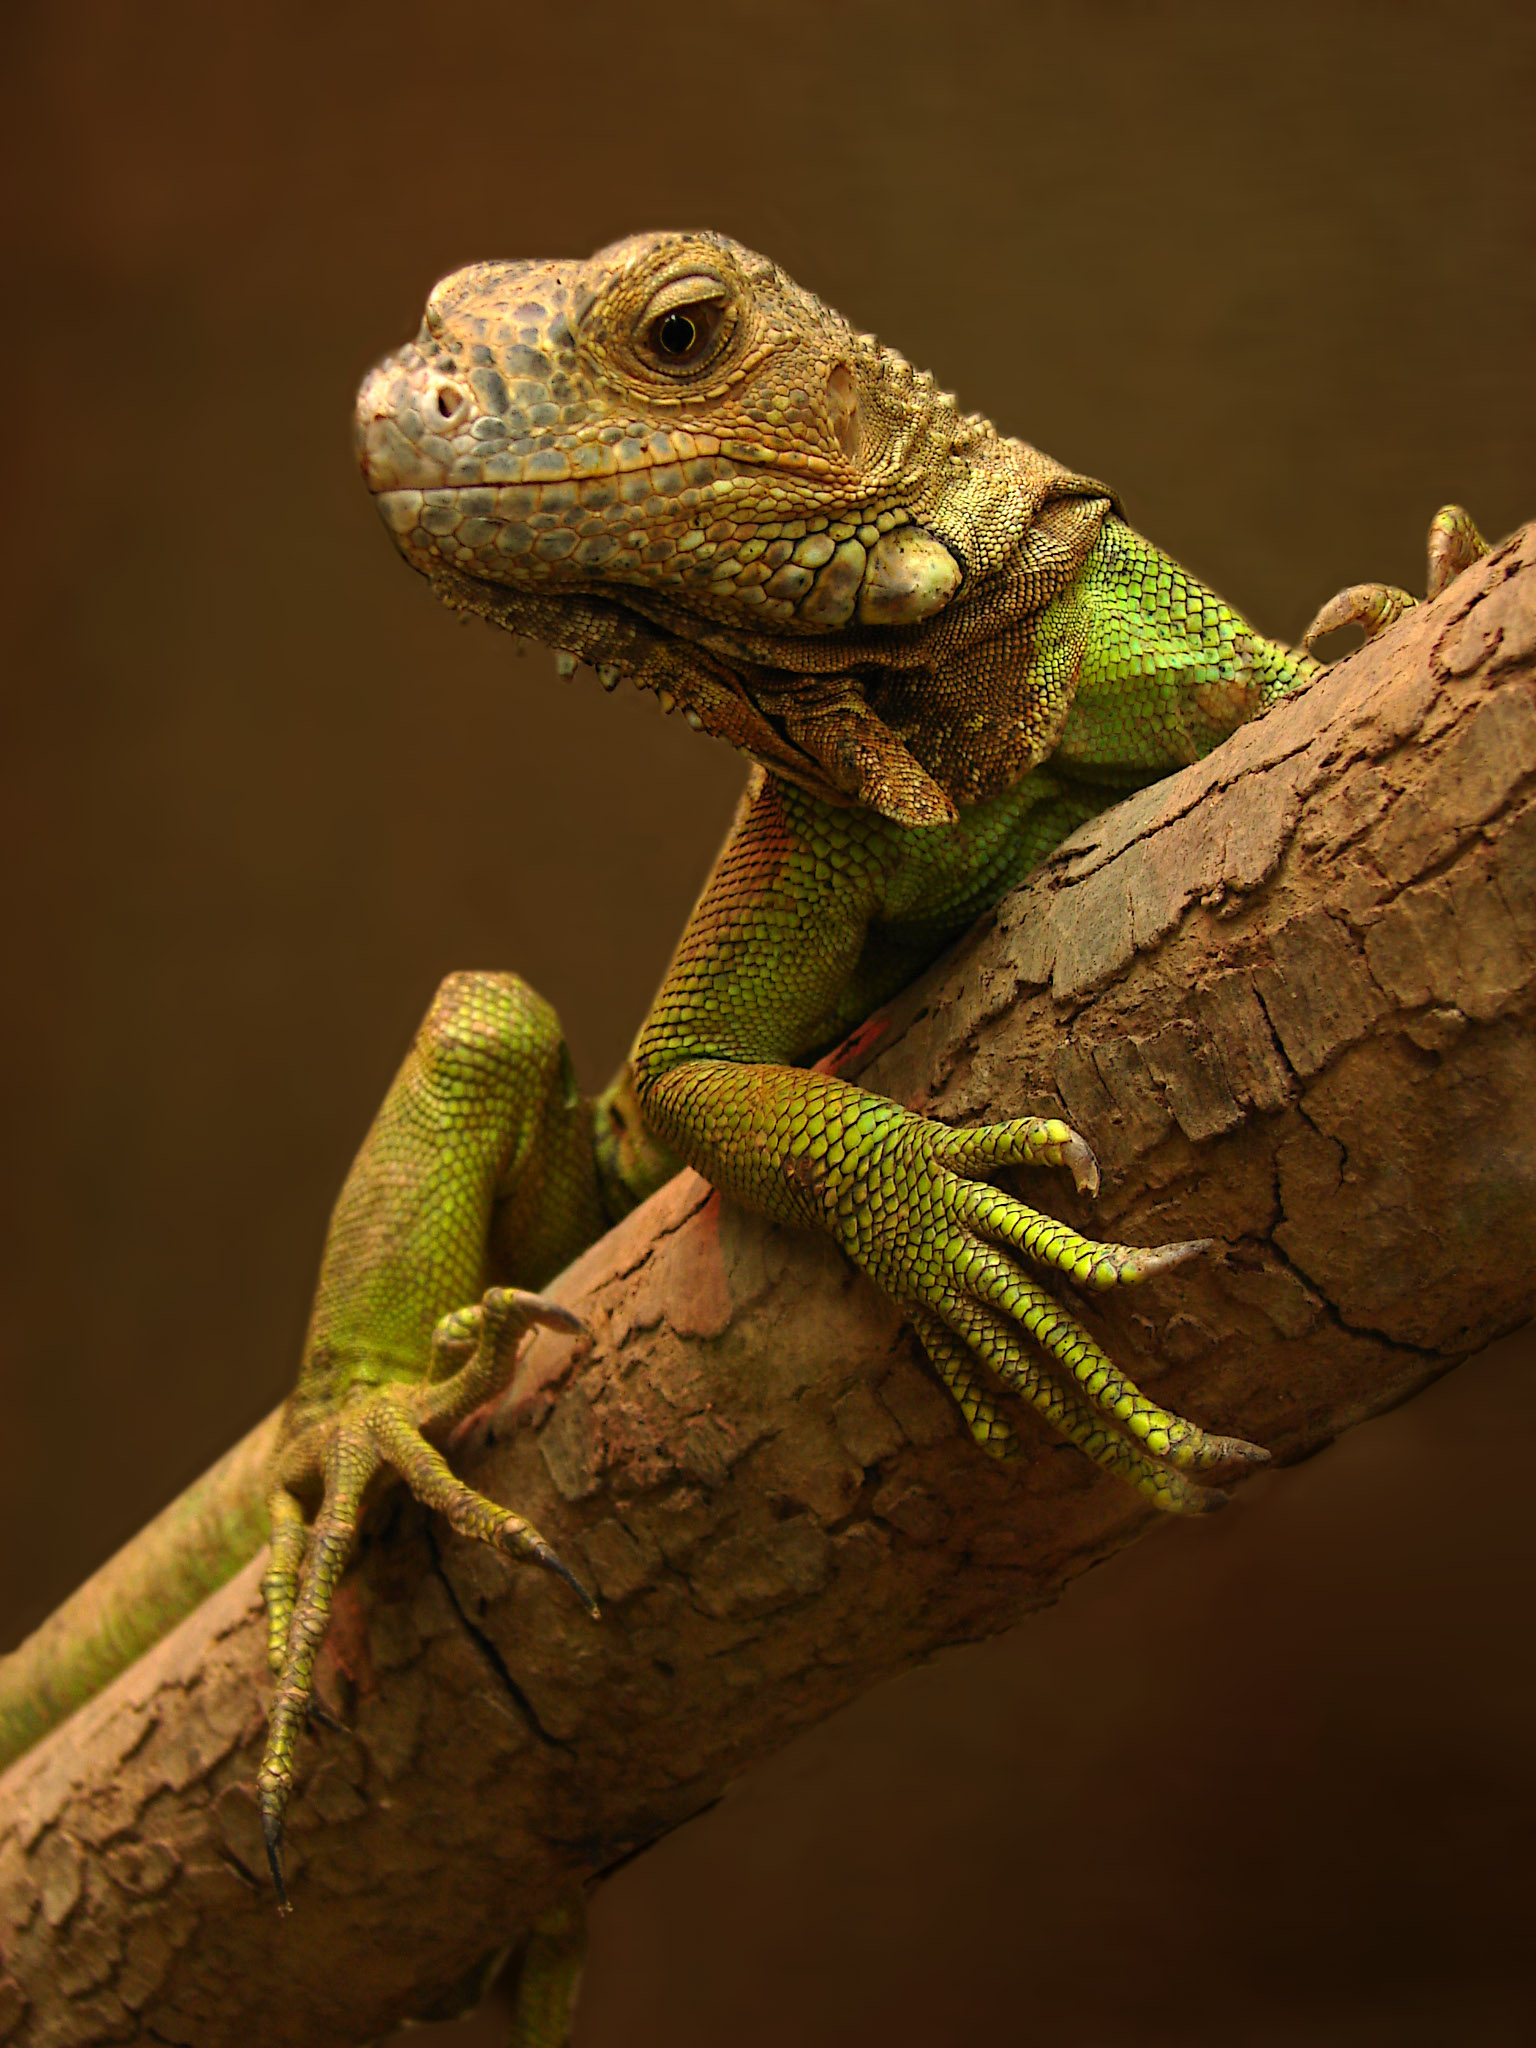 http://upload.wikimedia.org/wikipedia/commons/8/8e/Iguana_01102.jpg